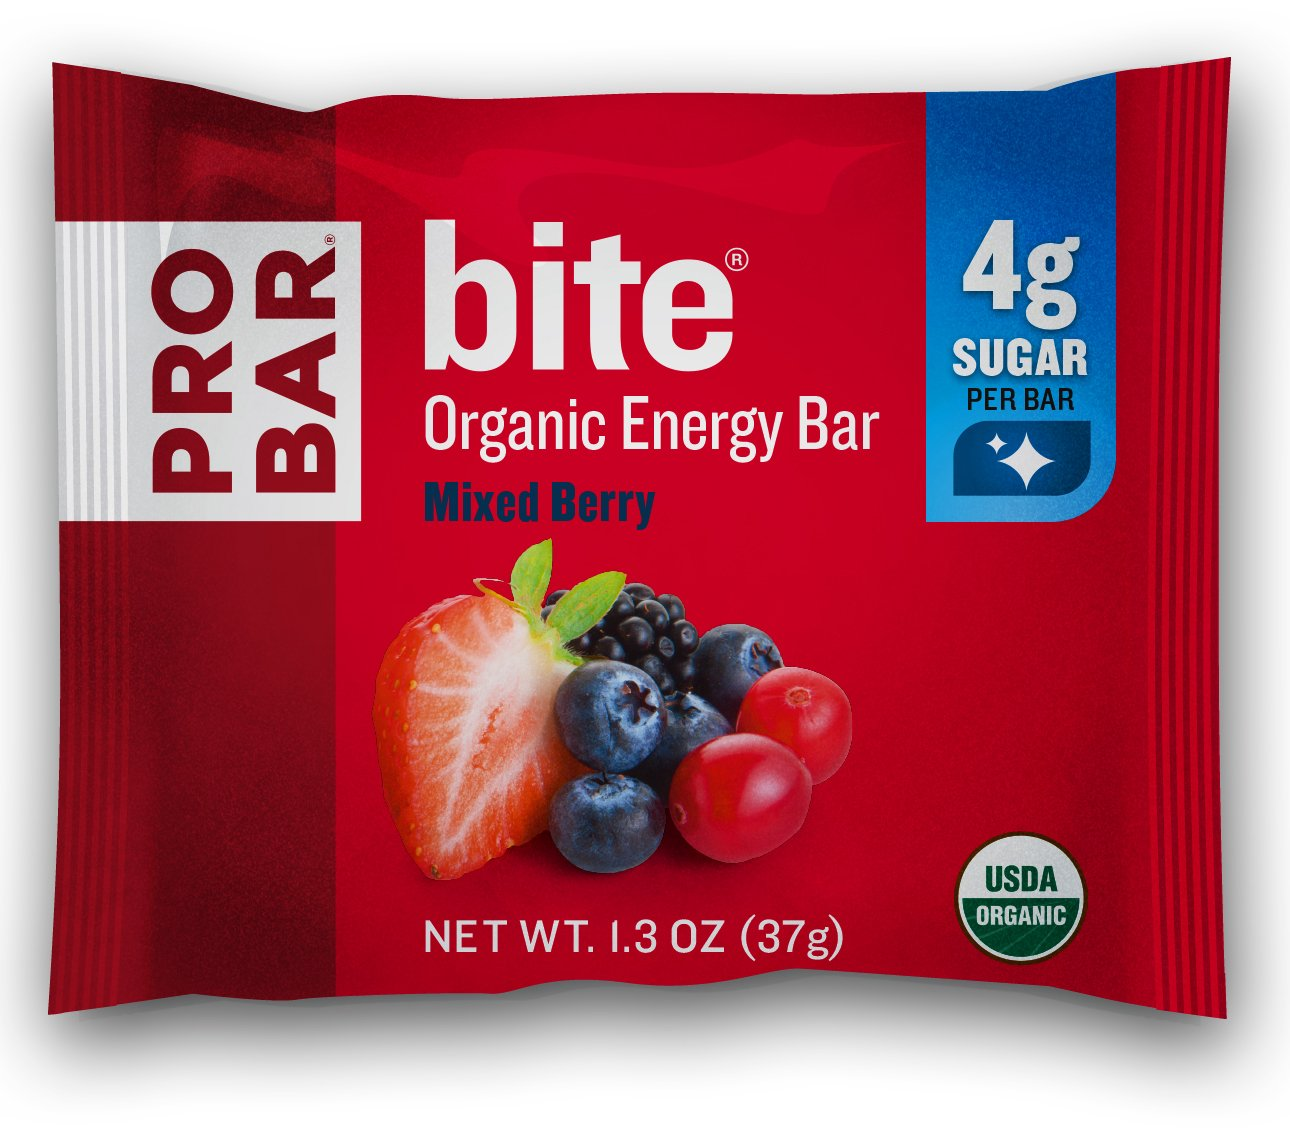 PROBAR - bite Organic Energy Bar - Mixed Berry - USDA Organic, Gluten-Free, Non-GMO Project Verified, Plant-Based Whole Food Ingredients, 4g Protein - Pack of 12